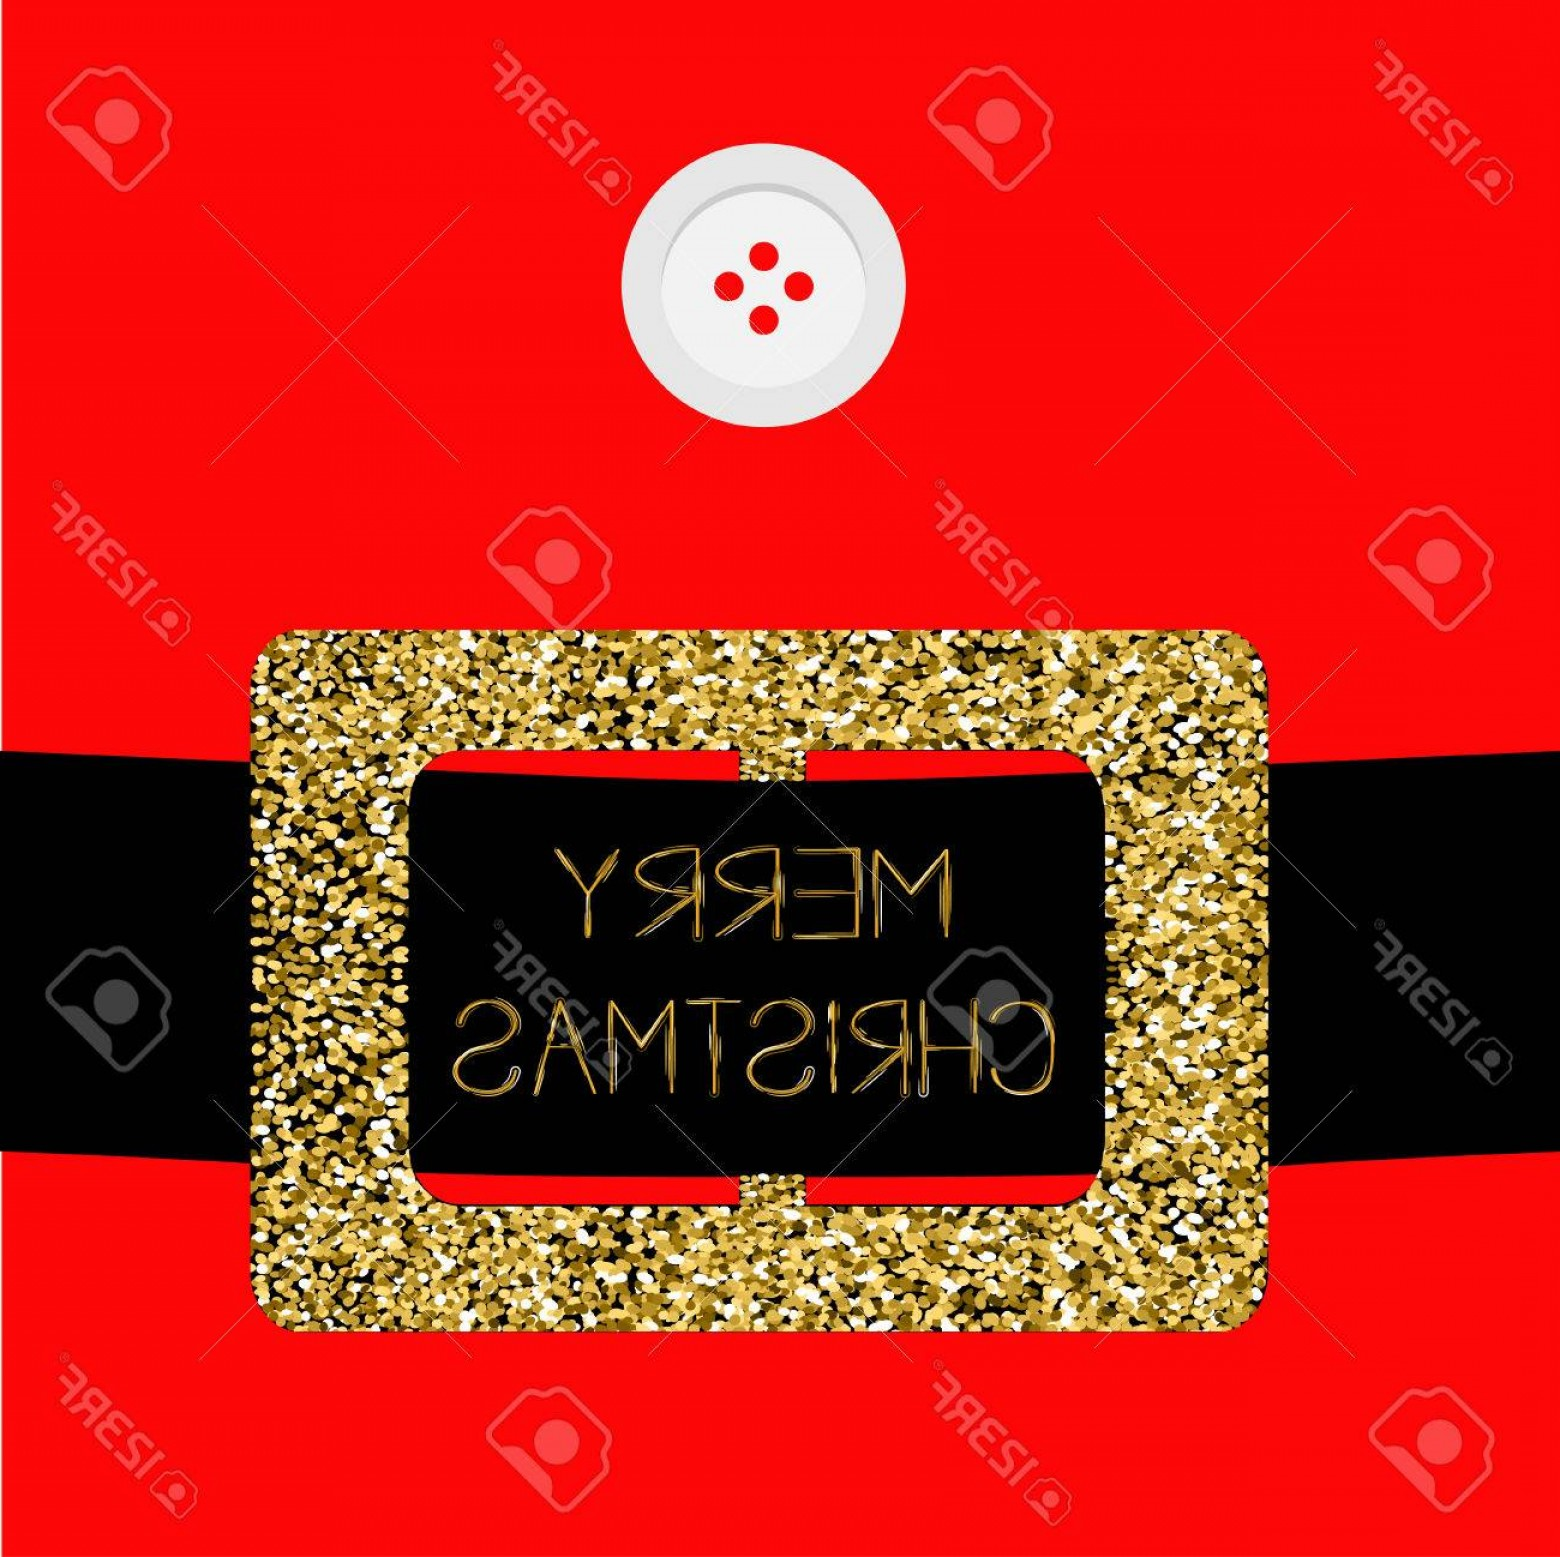 Vector Santa Belt: Photostock Vector Santa Claus Coat With Button And Gold Glitter Belt Merry Christmas Greeting Card Flat Design Red Bac